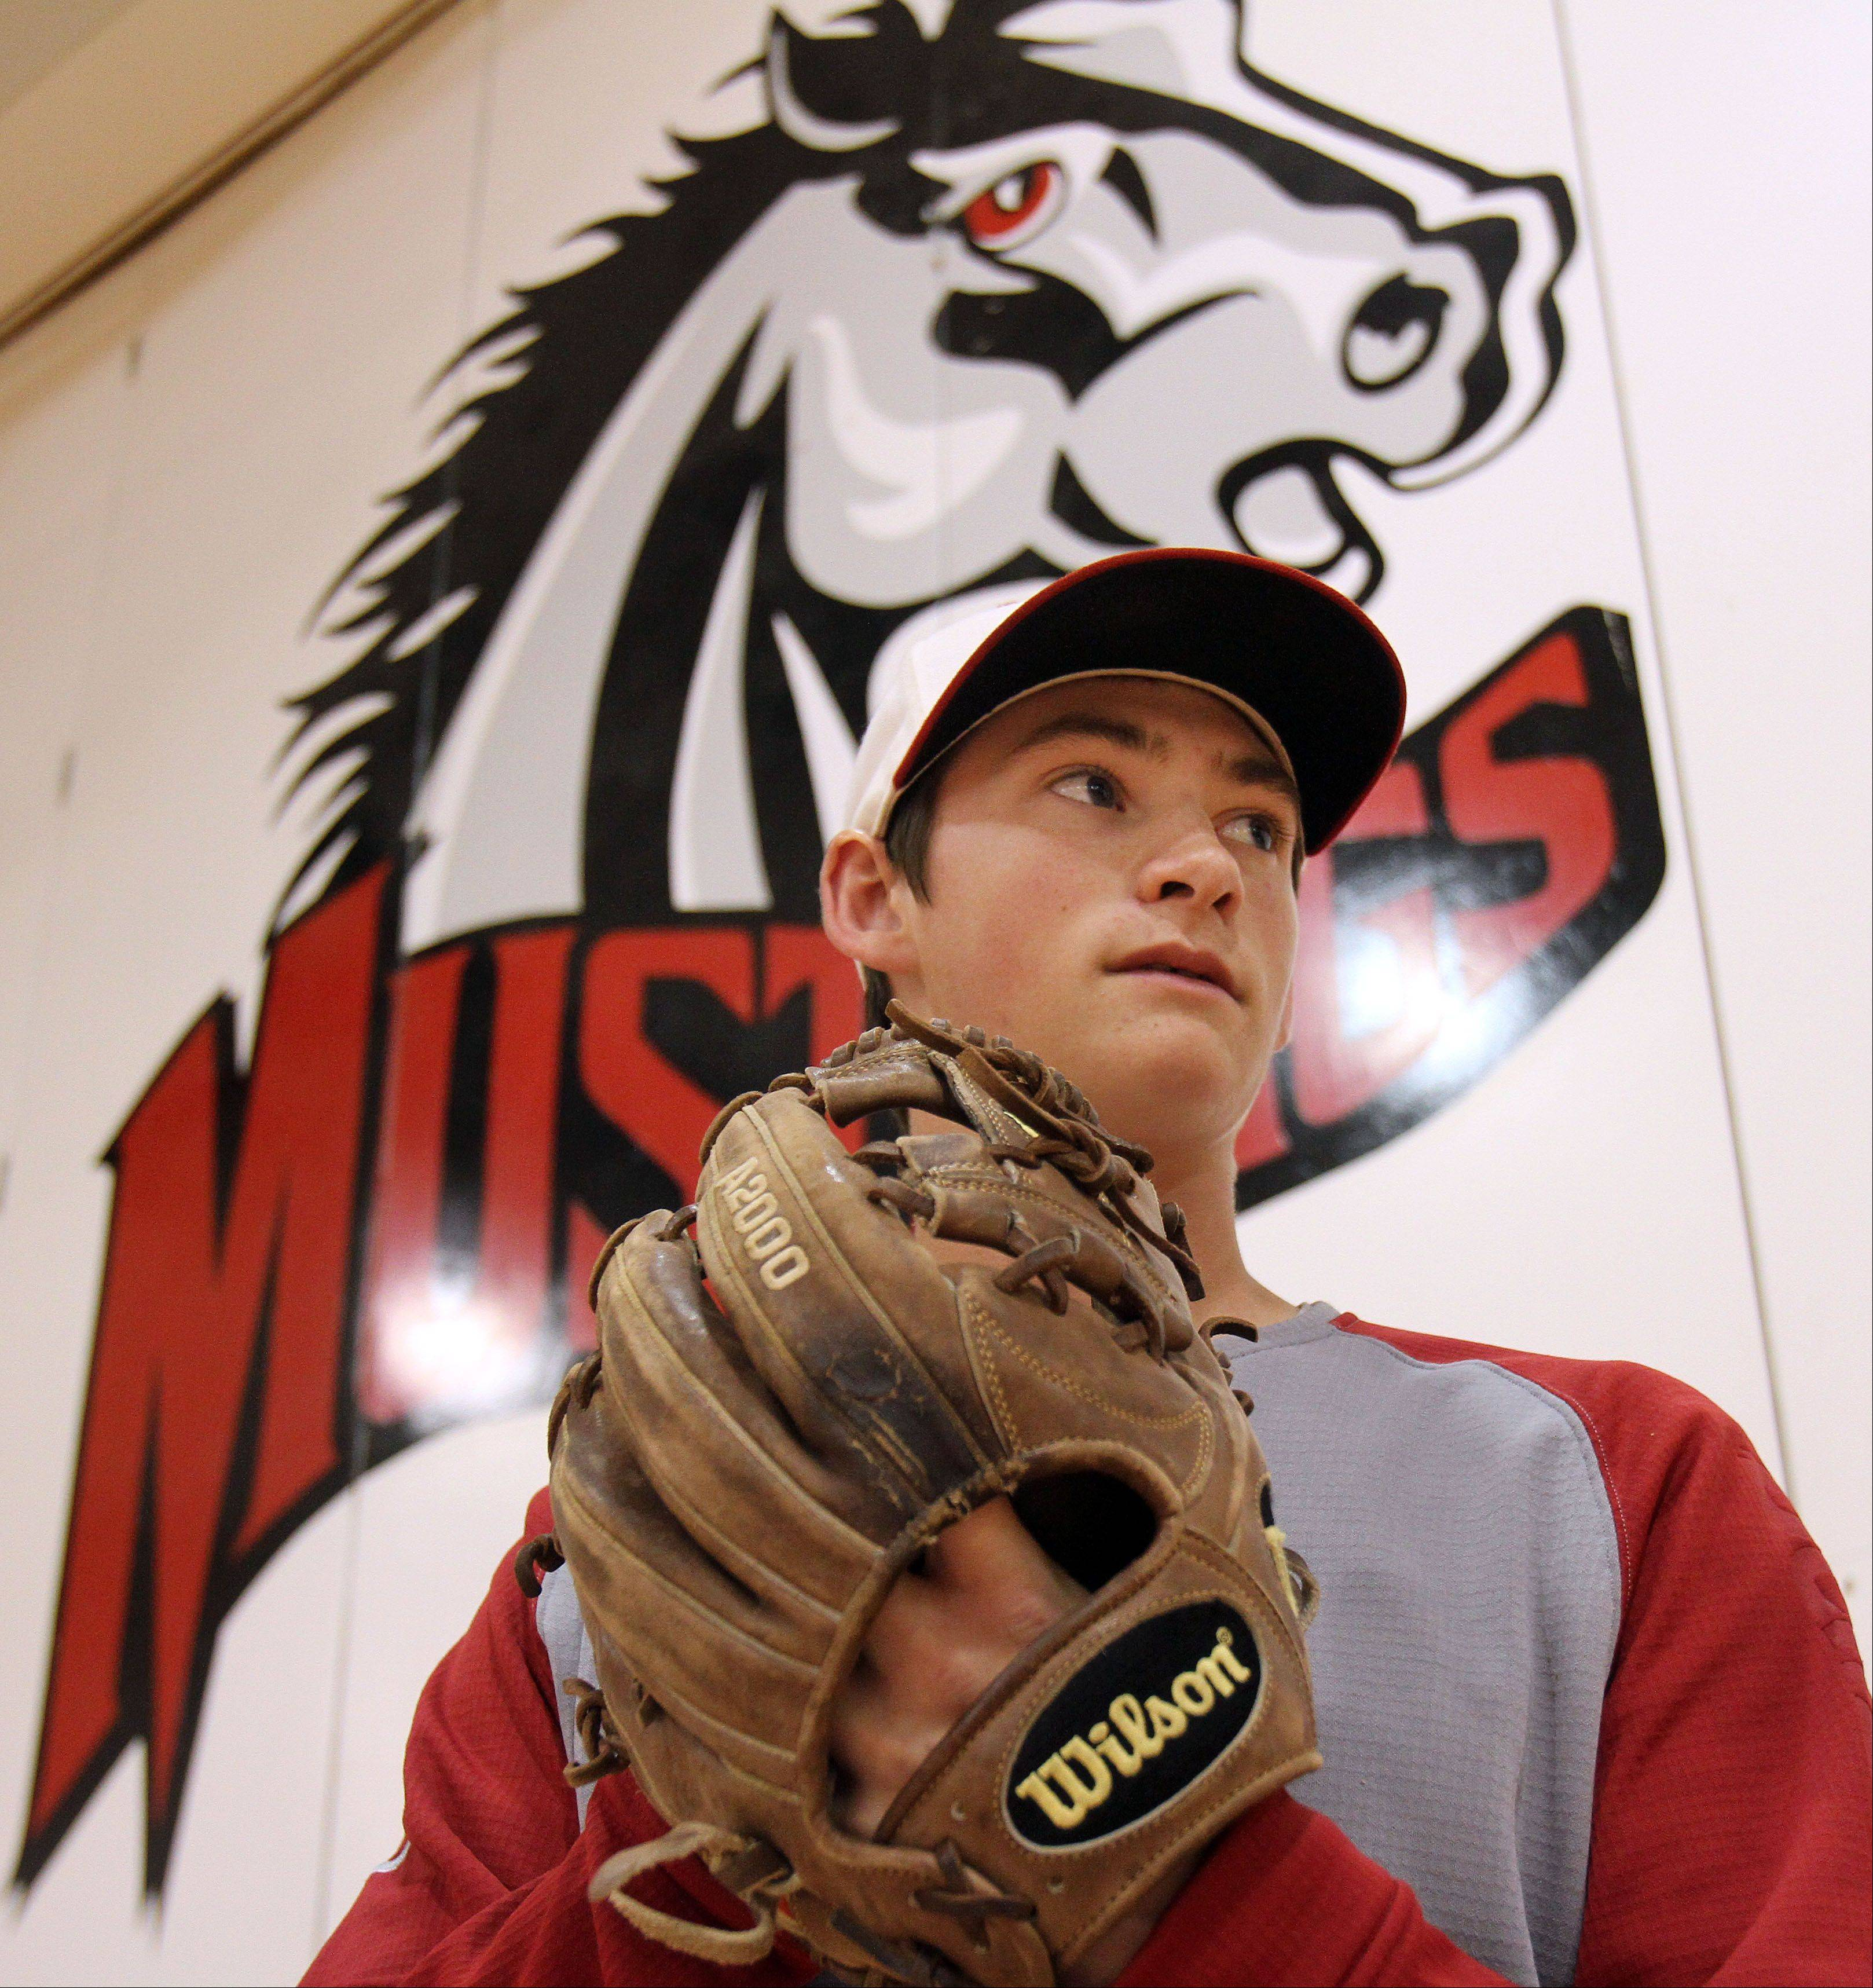 Mundelein pitcher Mitch Schulewitz has had a great start to the year at 5-0, partly due to his becoming a true student of the game � and his opponents.